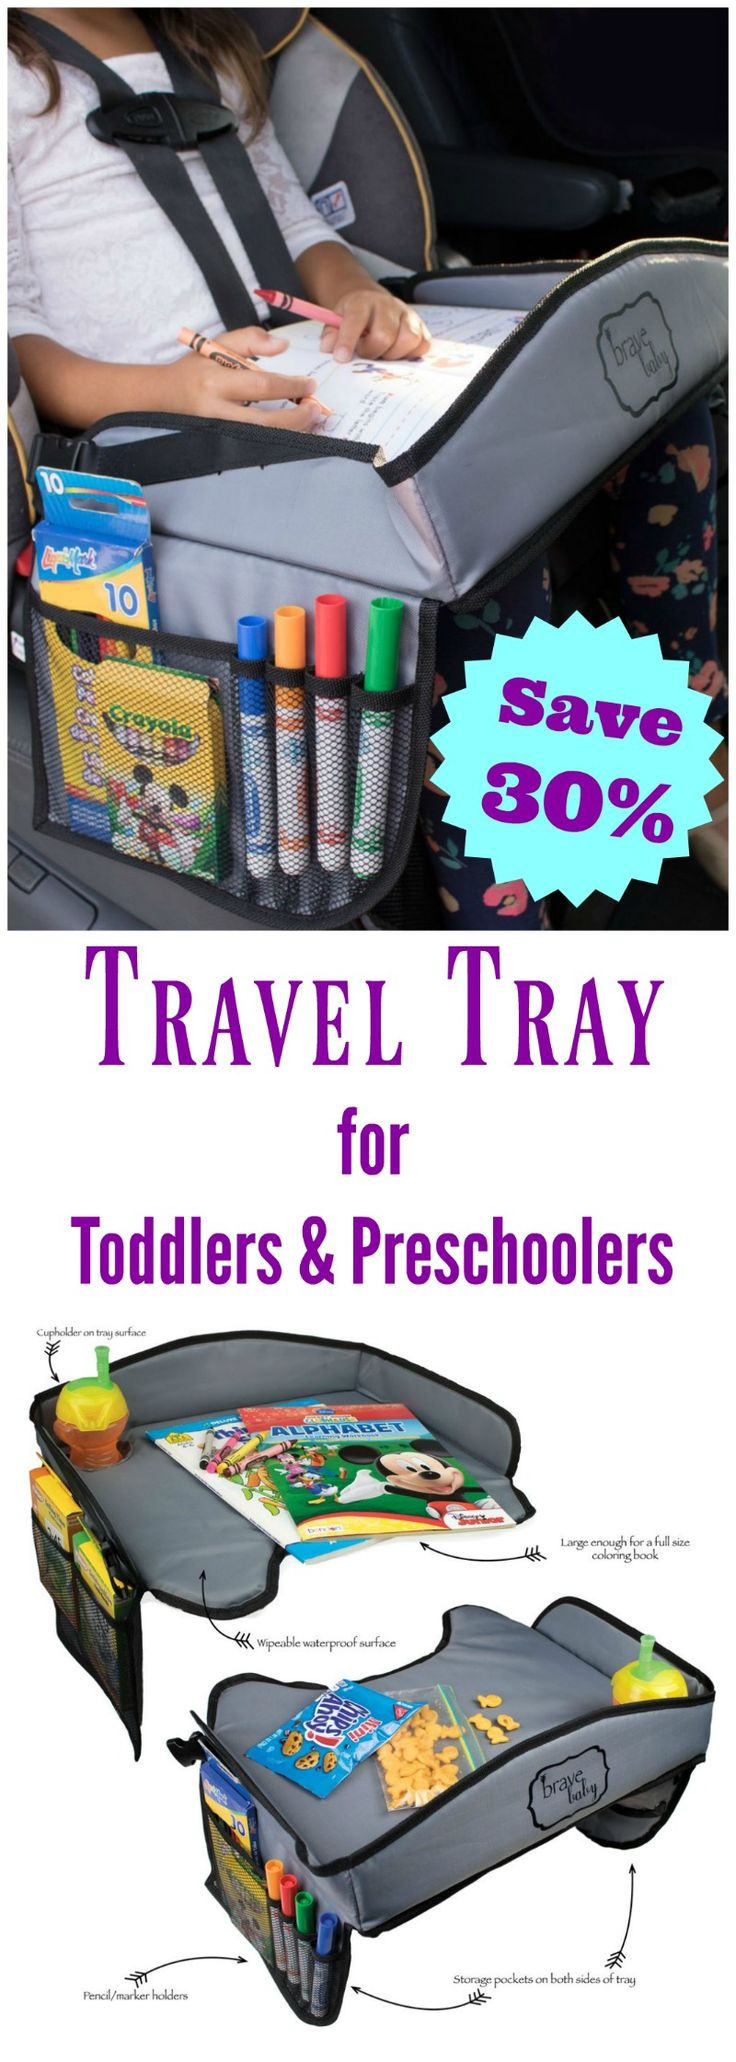 Kids Portable Travel Tray for Car, Airplane, Stroller - 25+ Best Ideas About Travel Tray On Pinterest Kids Car